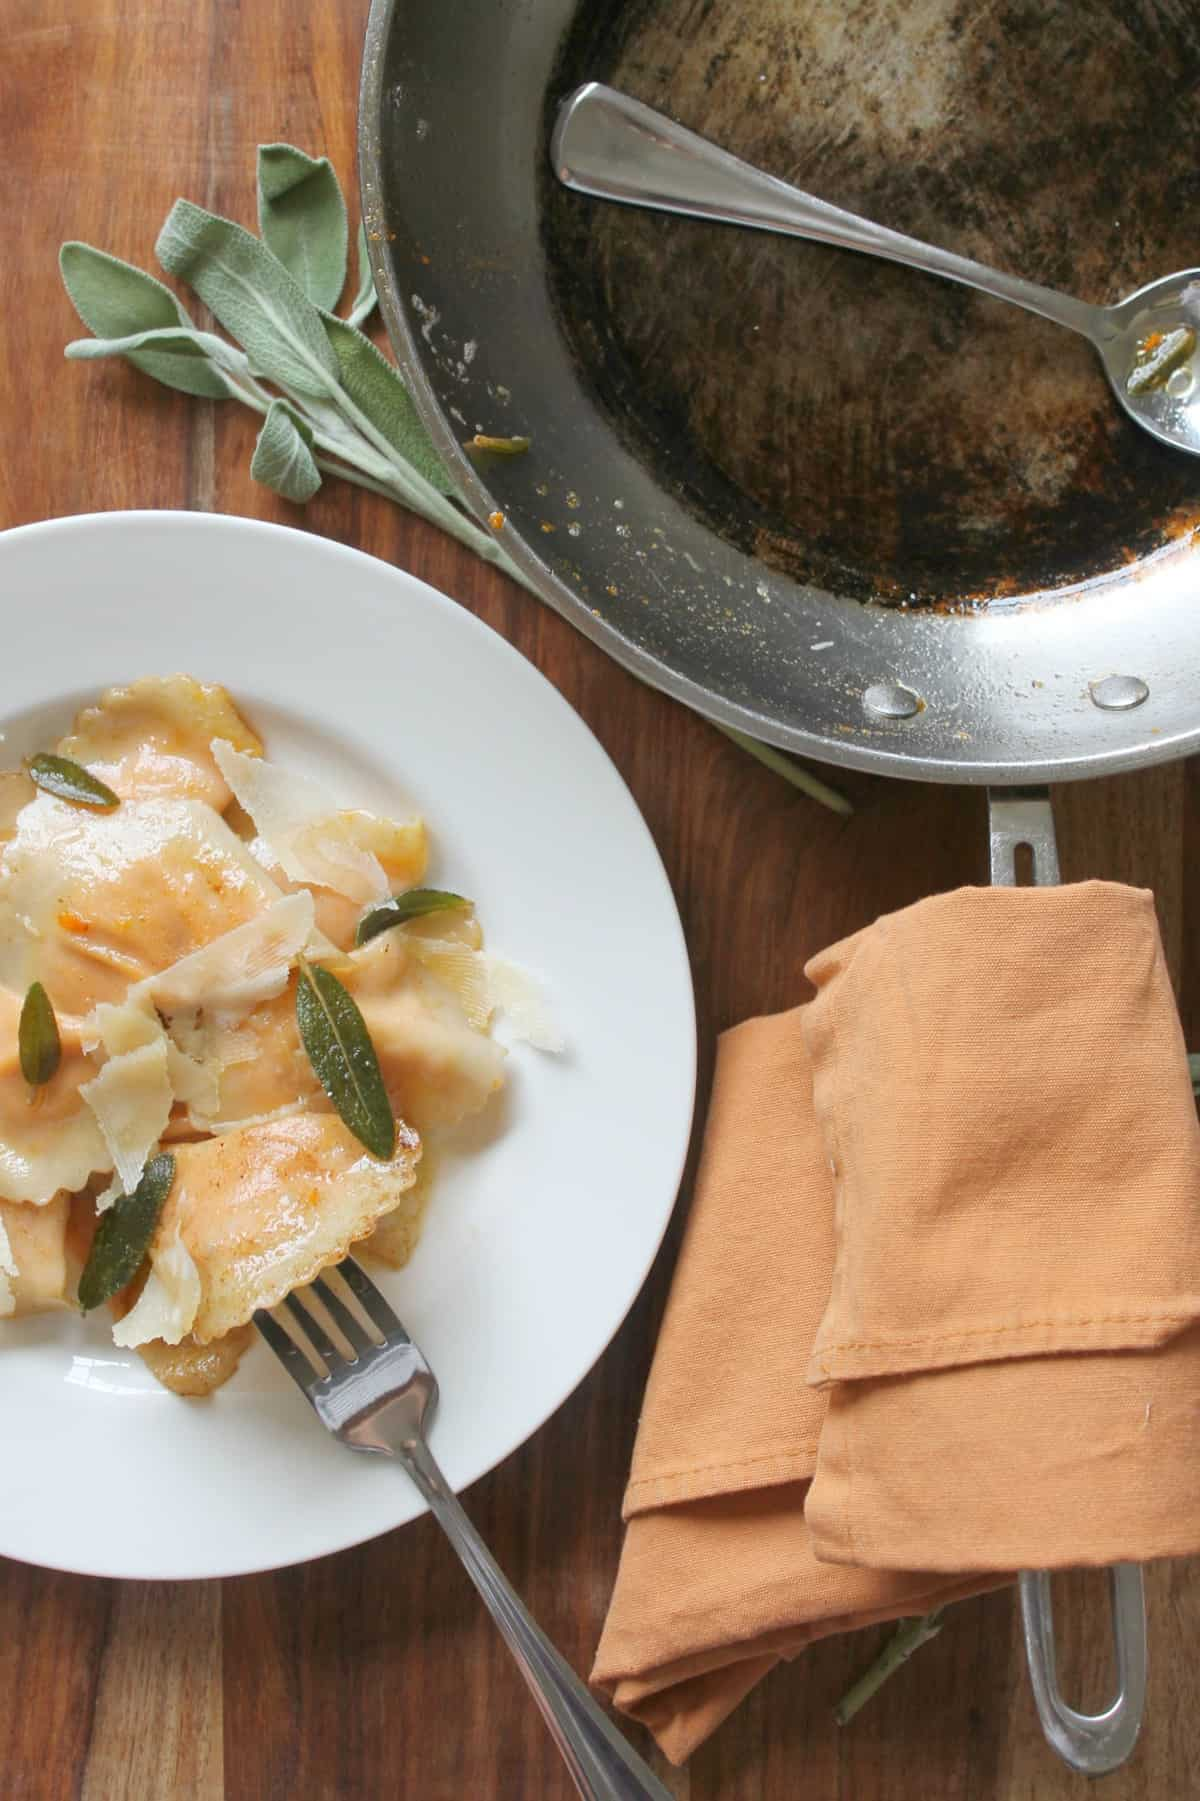 Roasted Carrot Agnolotti recreated from the delicious dinner we had in Chicago